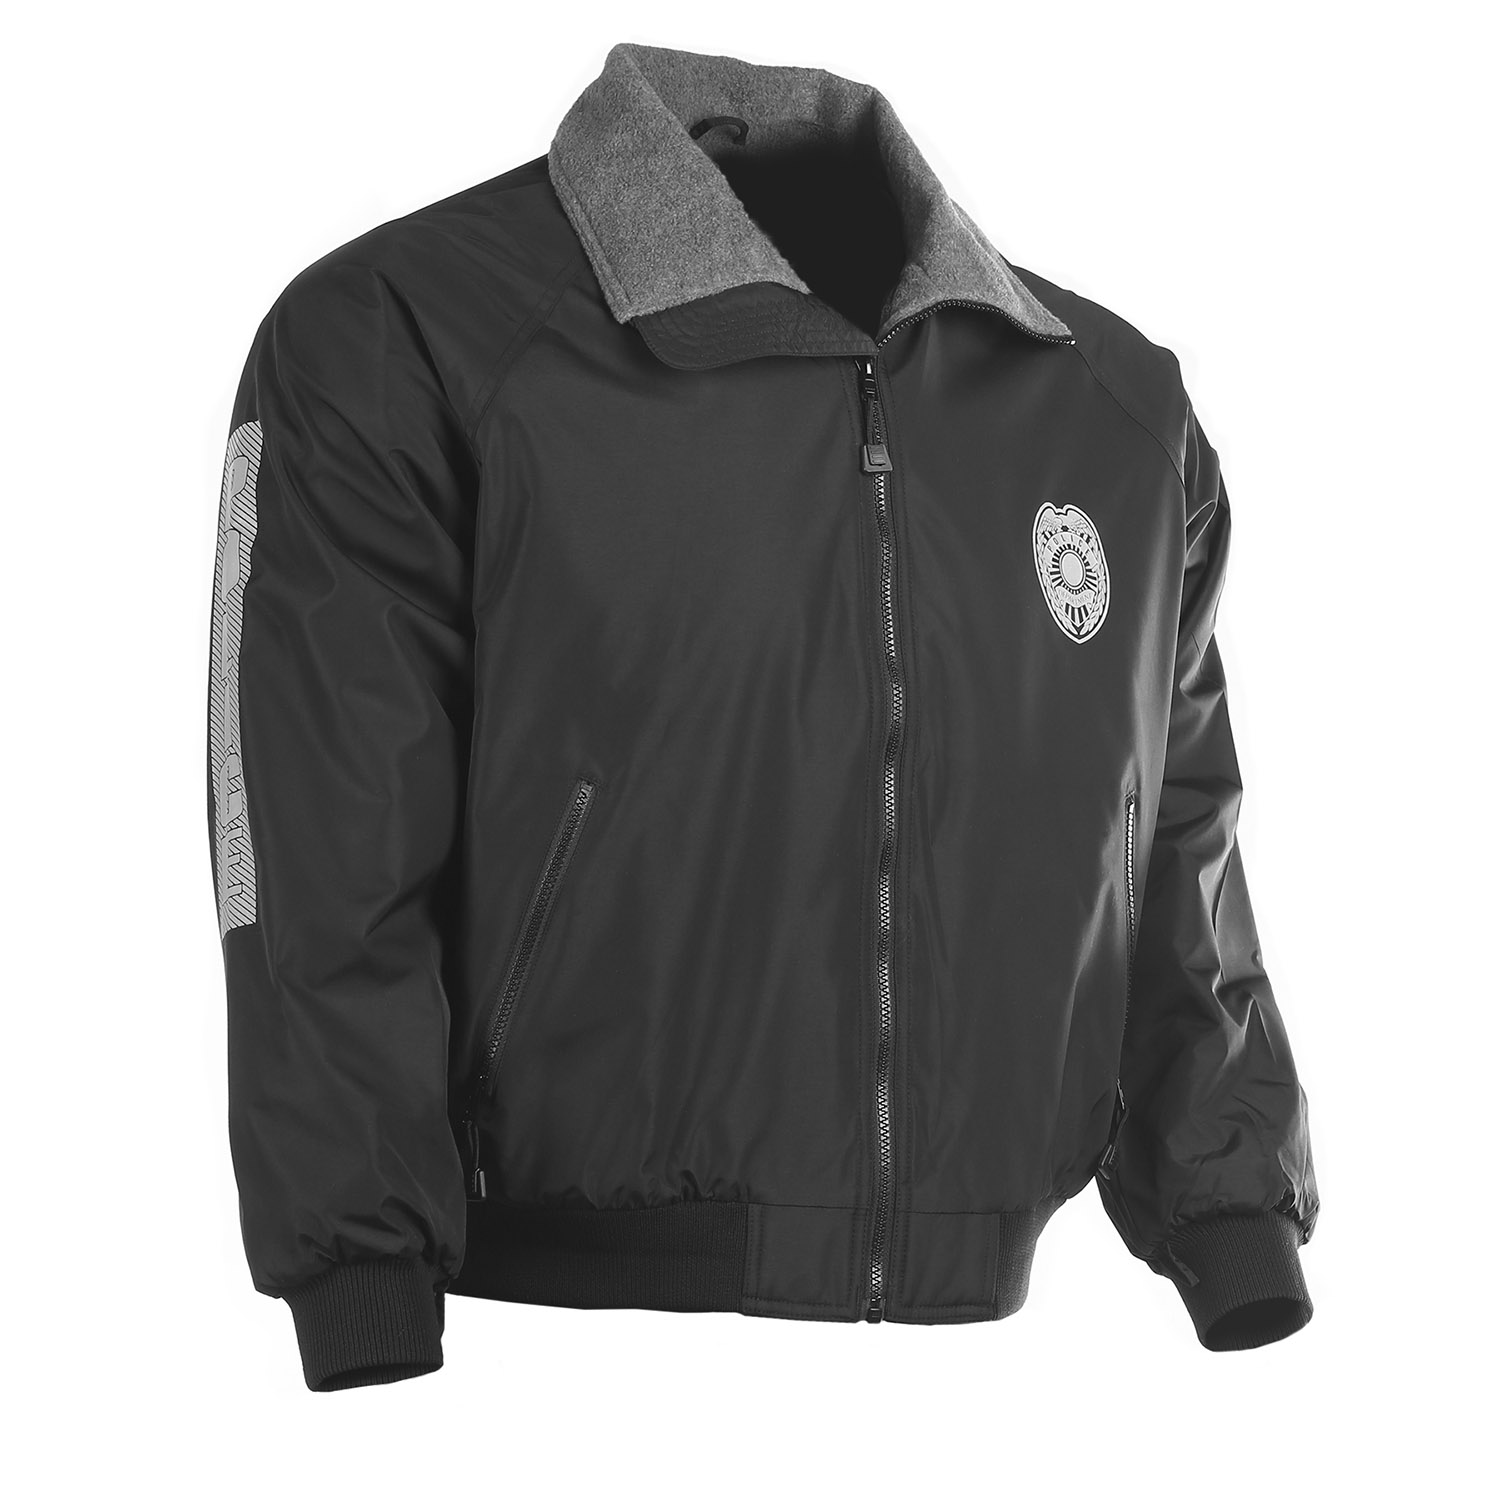 Galls 360 Reflective Three Season Jacket